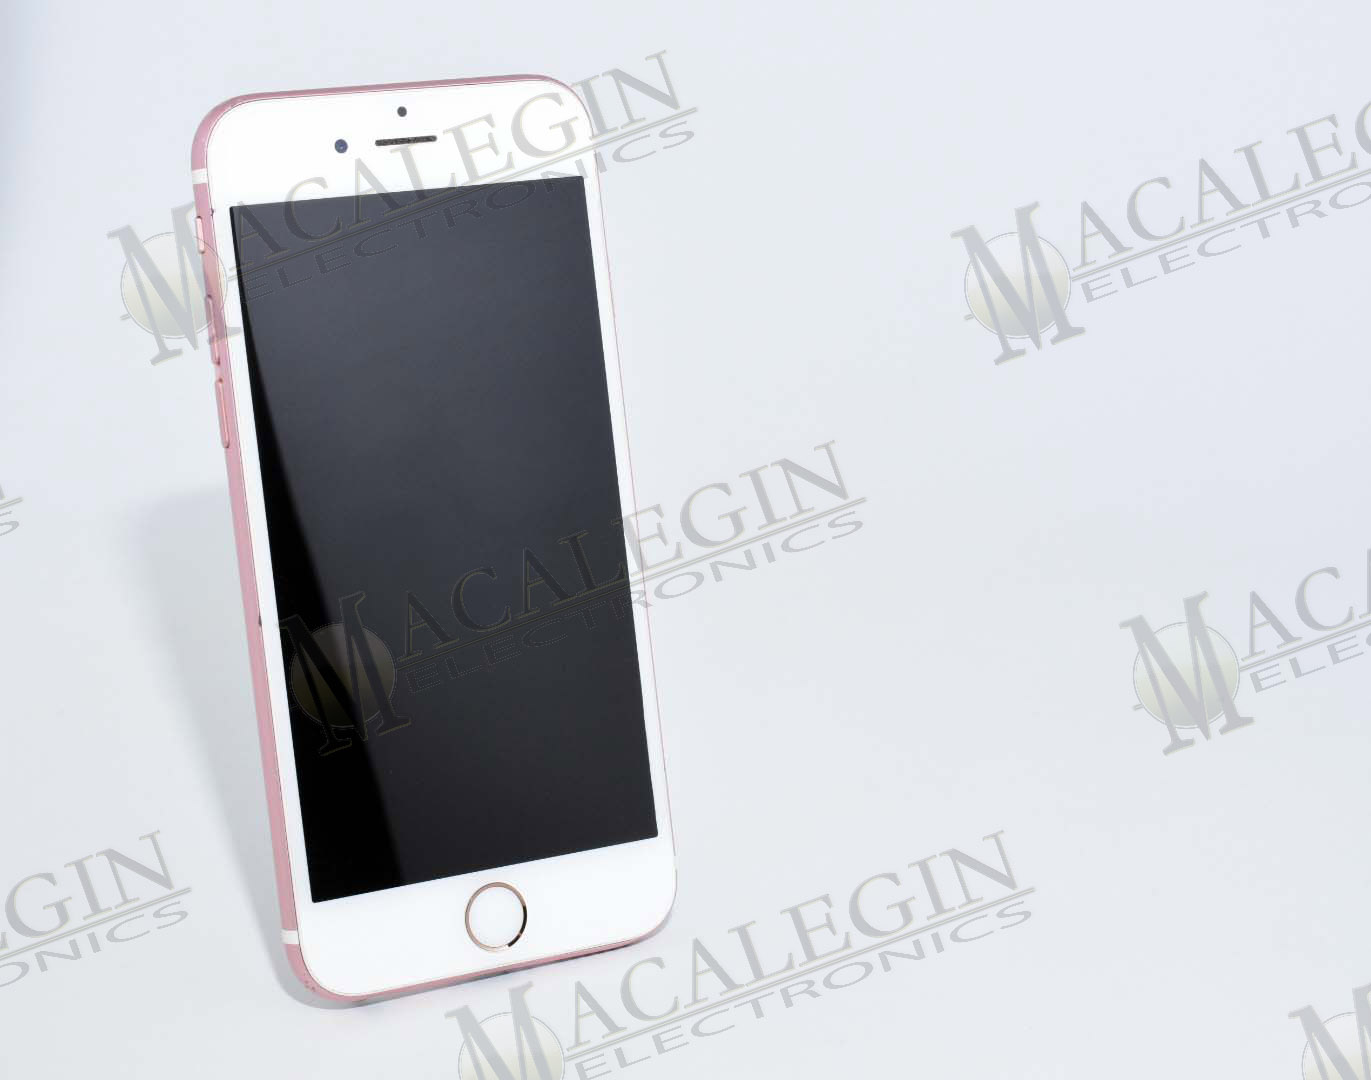 Used APPLE A1688 IPHONE 6S 128GB UNLOCKED in PGL condition for sale from Macalegin Electronics at $137 a piece.